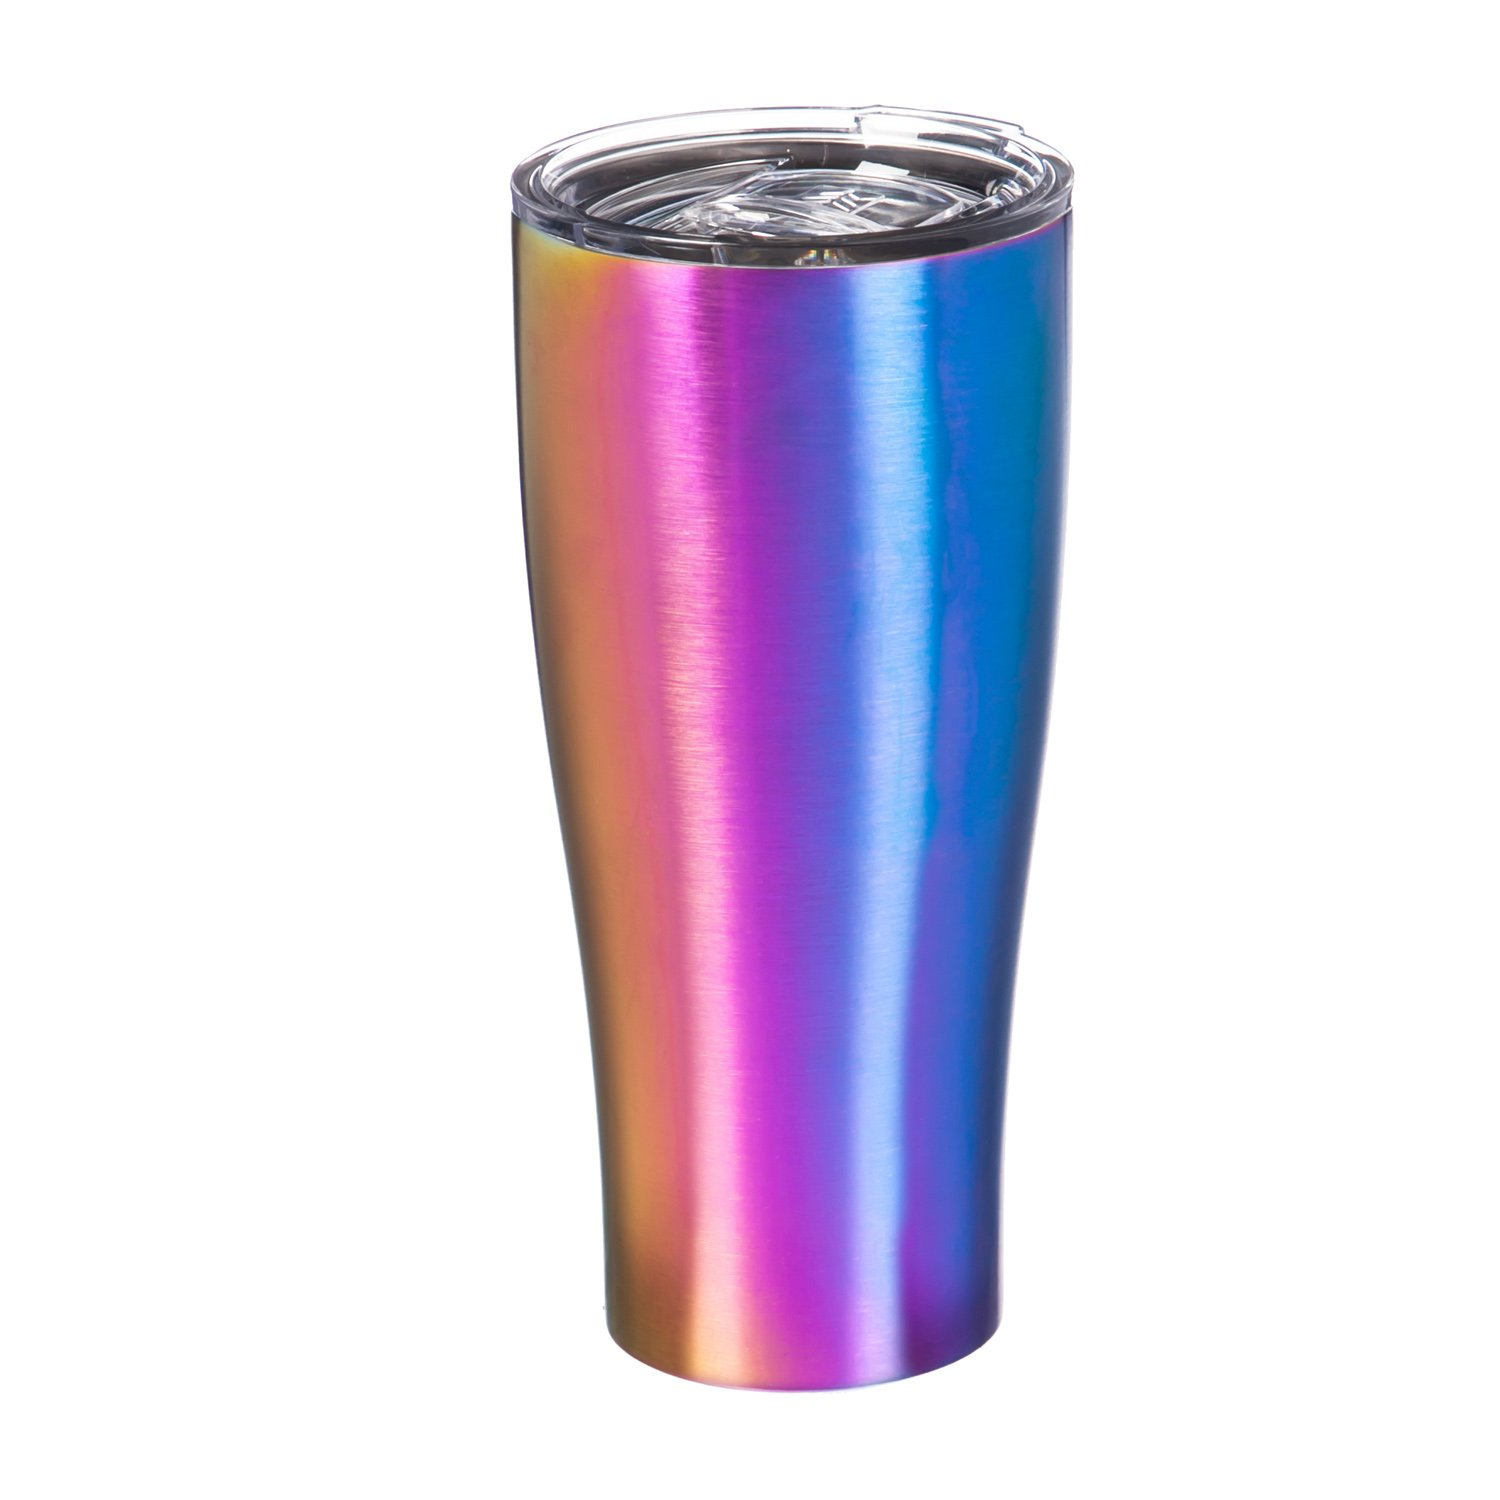 Cypress Home PVD Rainbow Stainless Steel Hot Beverage Travel Cup, 17 ounces